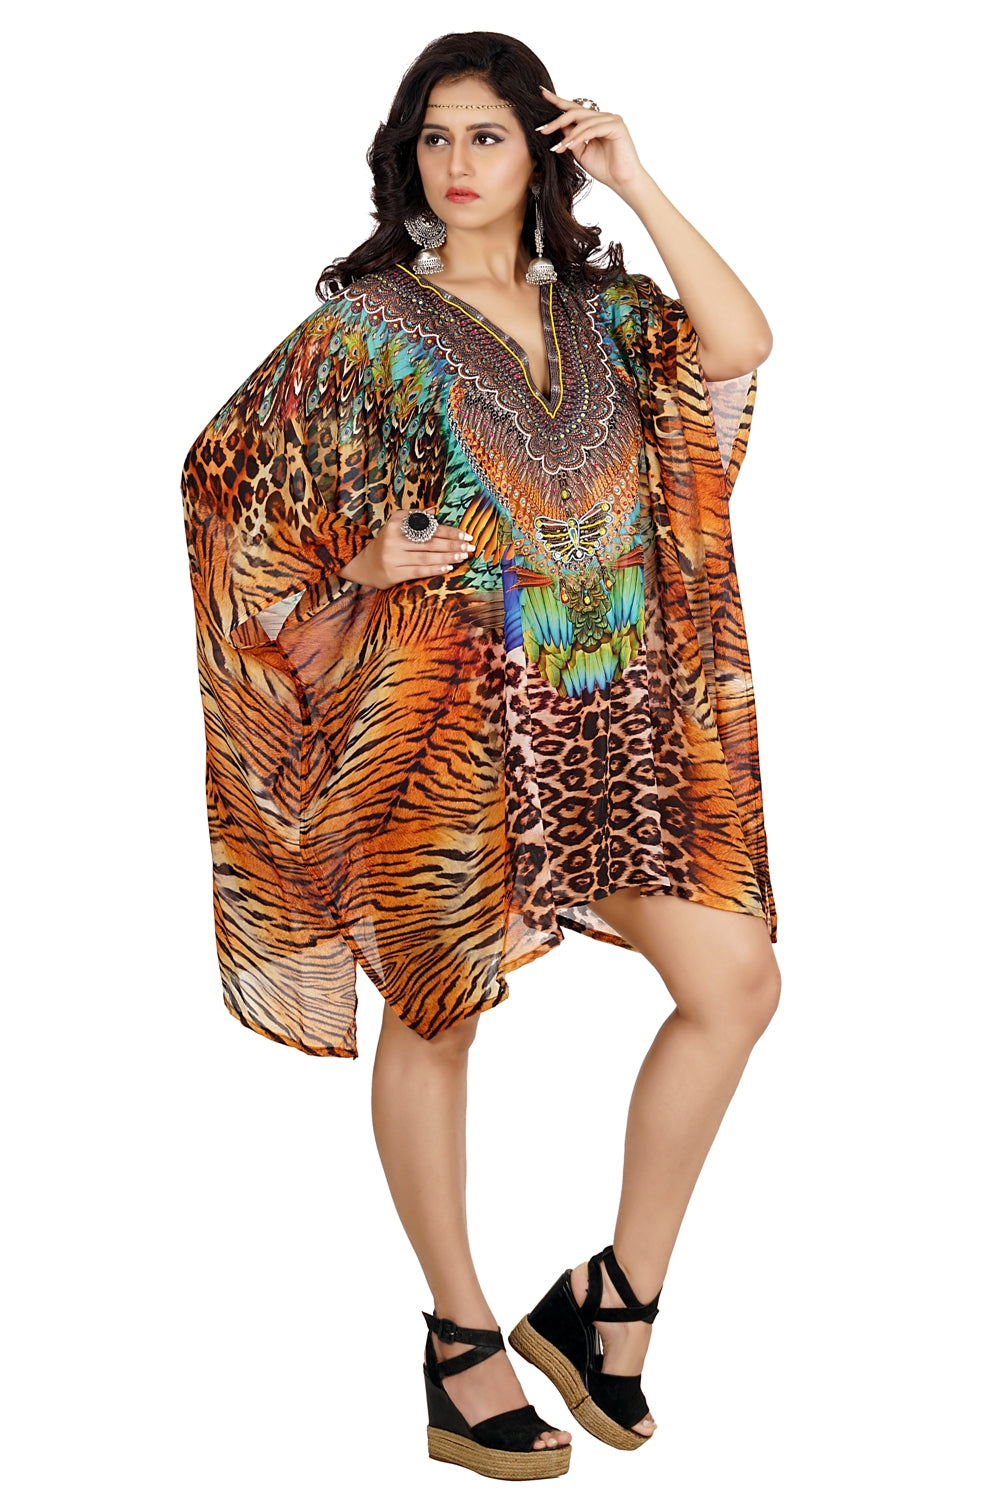 Fascinated Cheetah printed Short Silk Kaftan decked with unblemished beads and Feathers - Silk kaftan